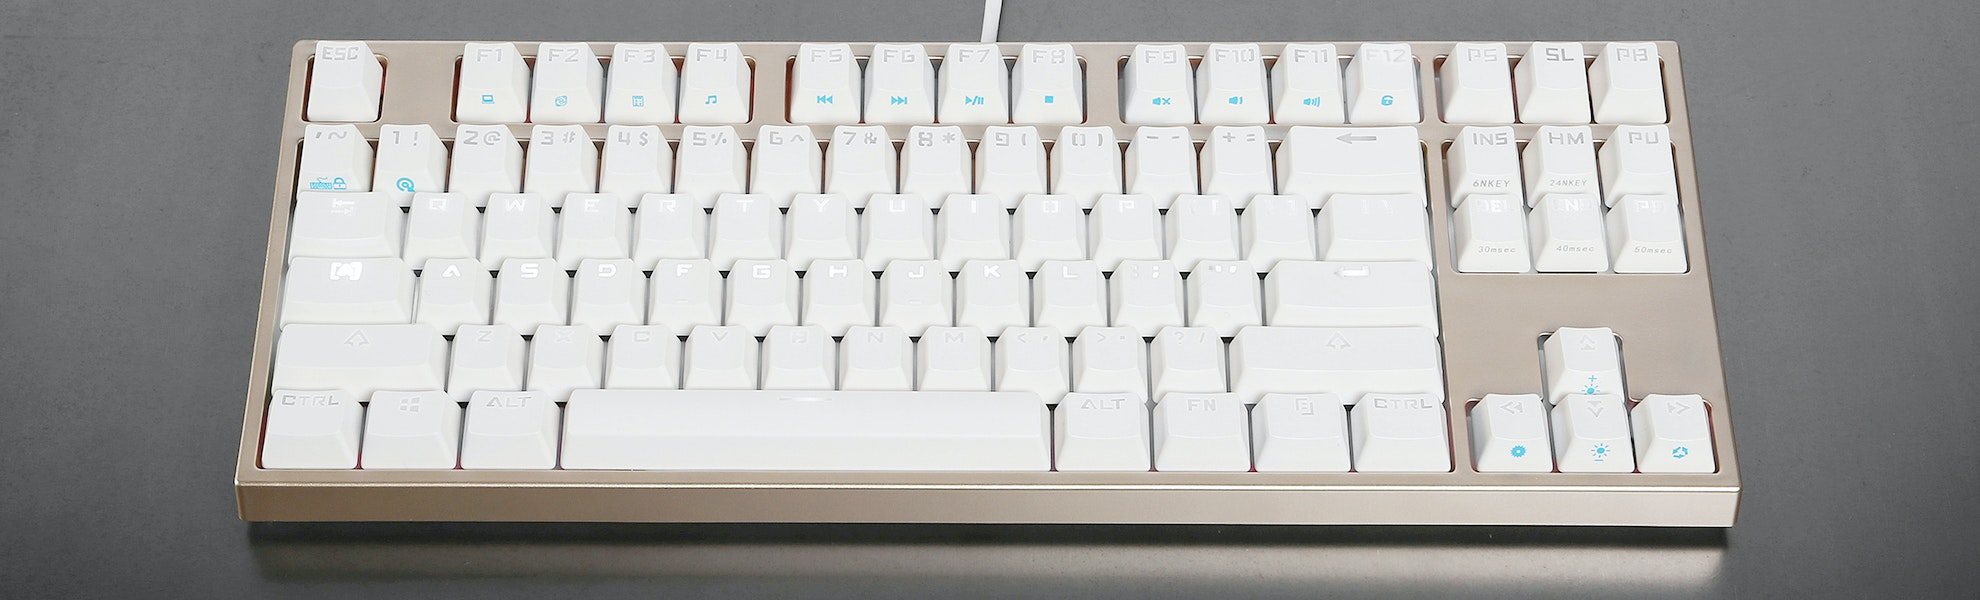 Keycool 87 Backlit Mechanical Keyboard